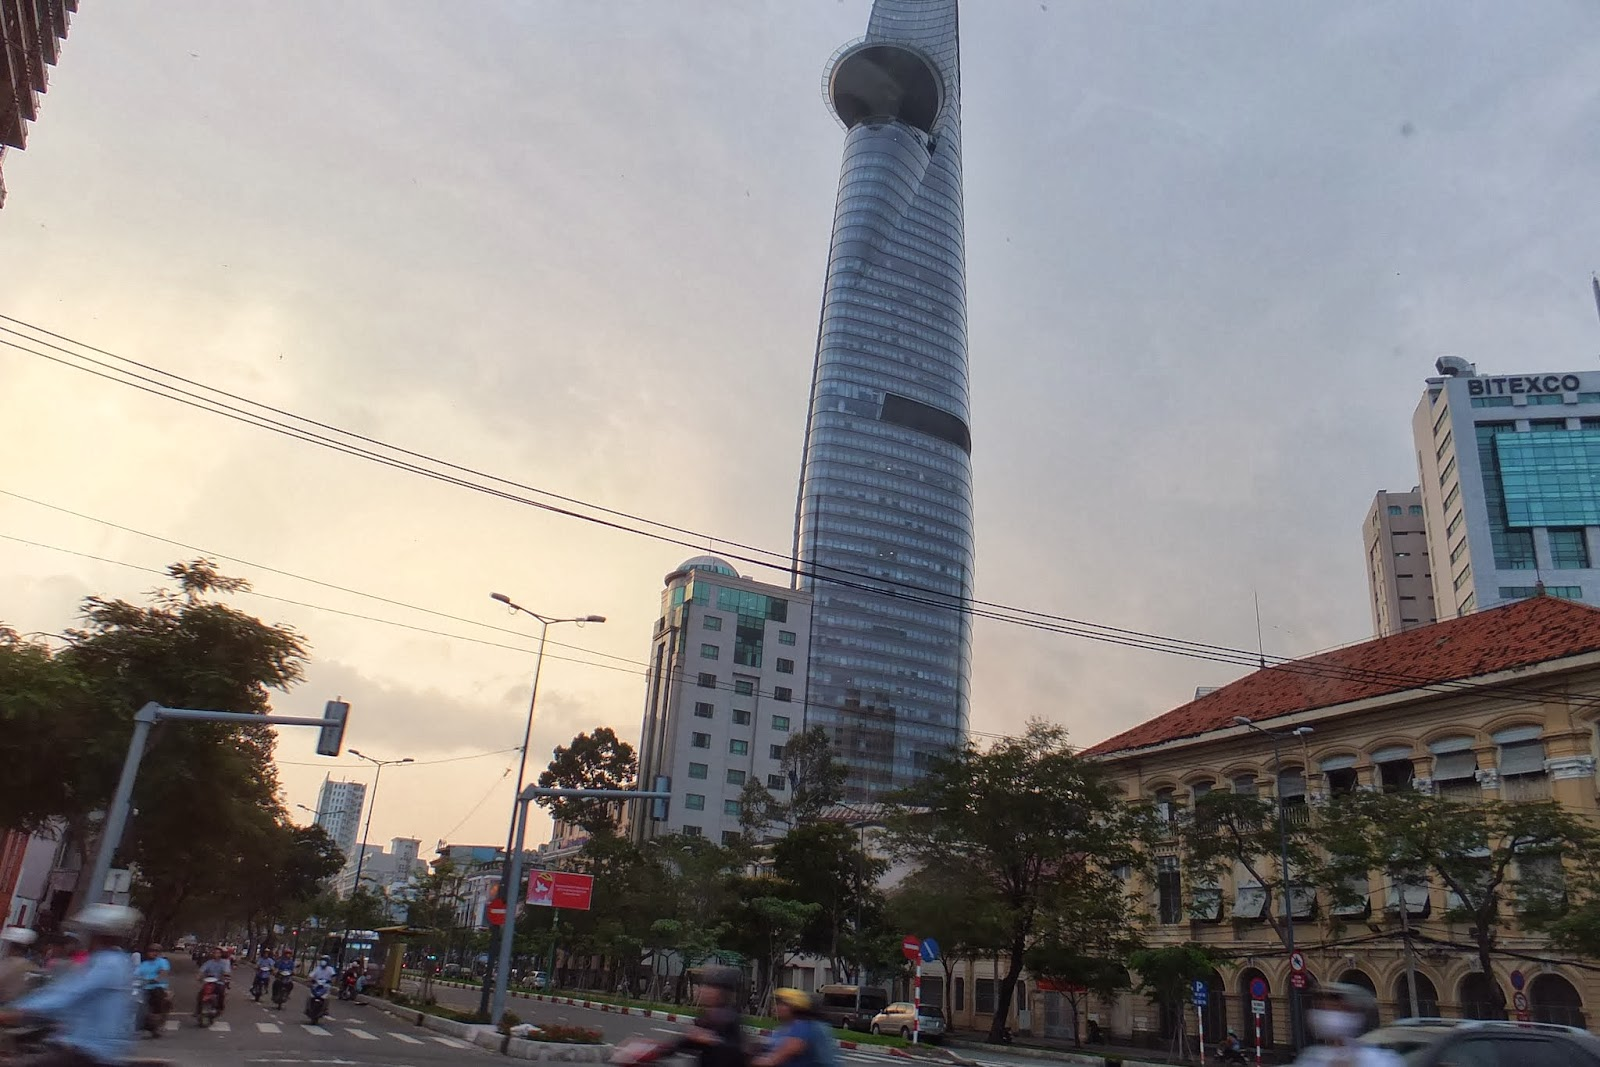 Bitexco-financial-tower